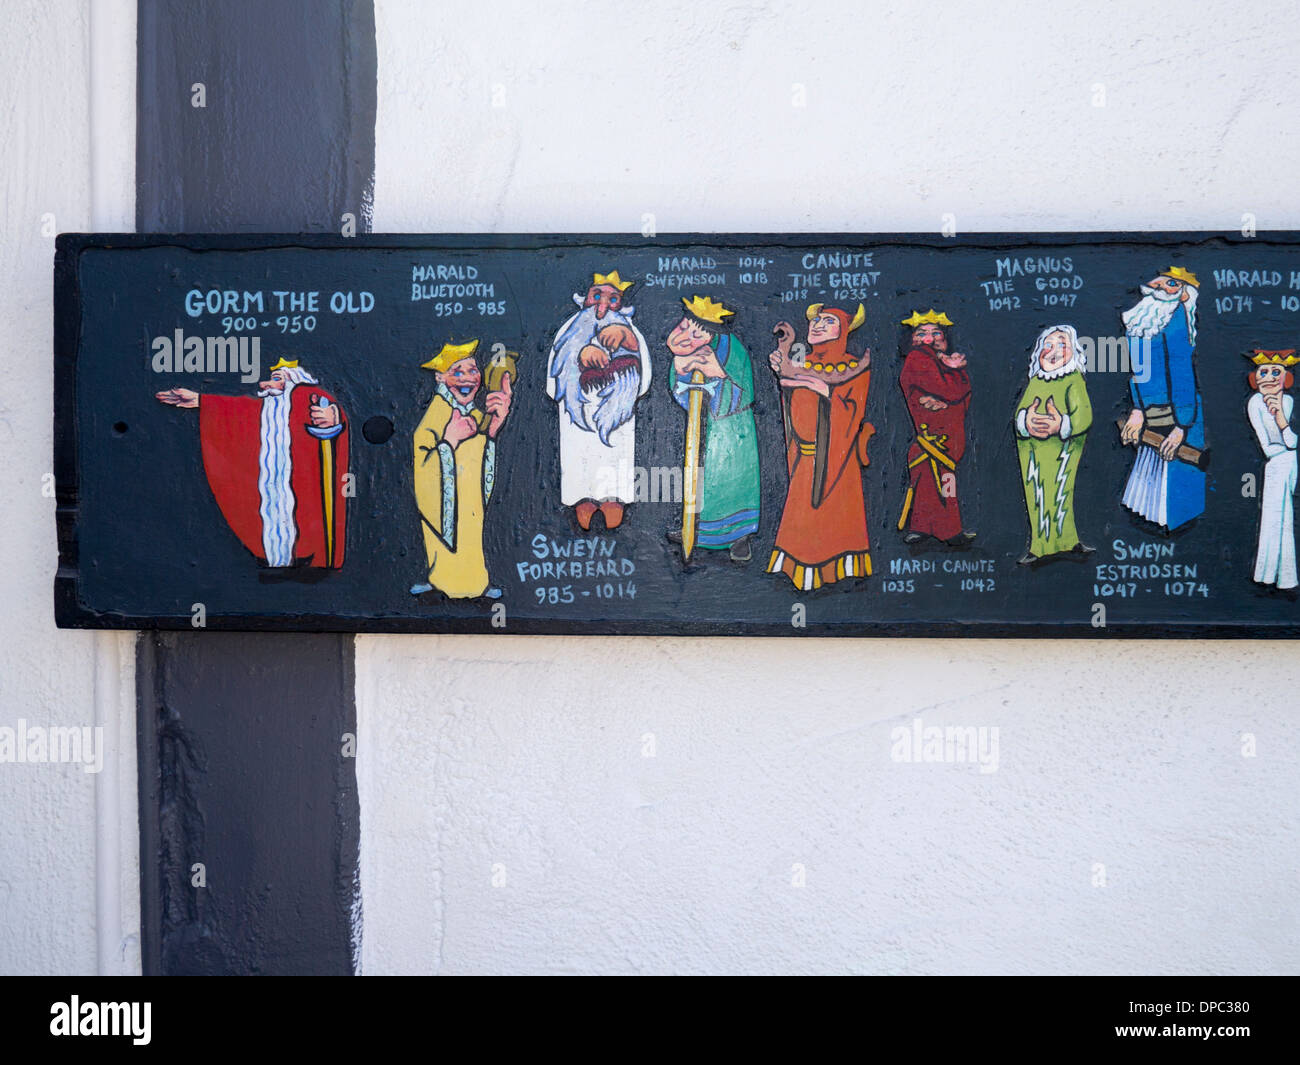 Board of Danish rulers in Solvang in the Santa Ynez Valley, California. A Danish style town - Stock Image